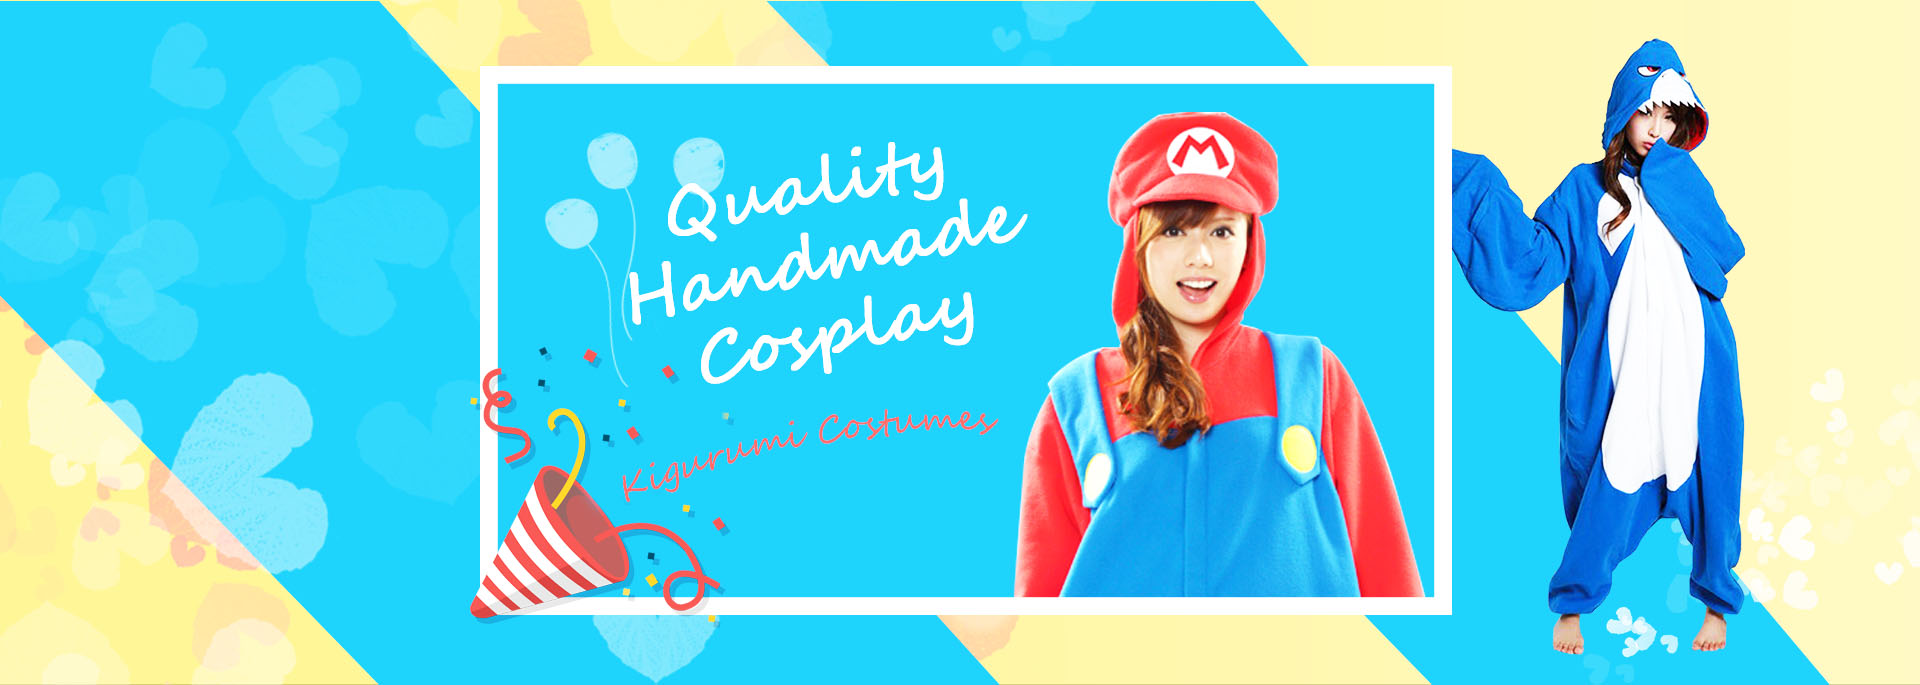 where to buy onesies costumes , video game costumes